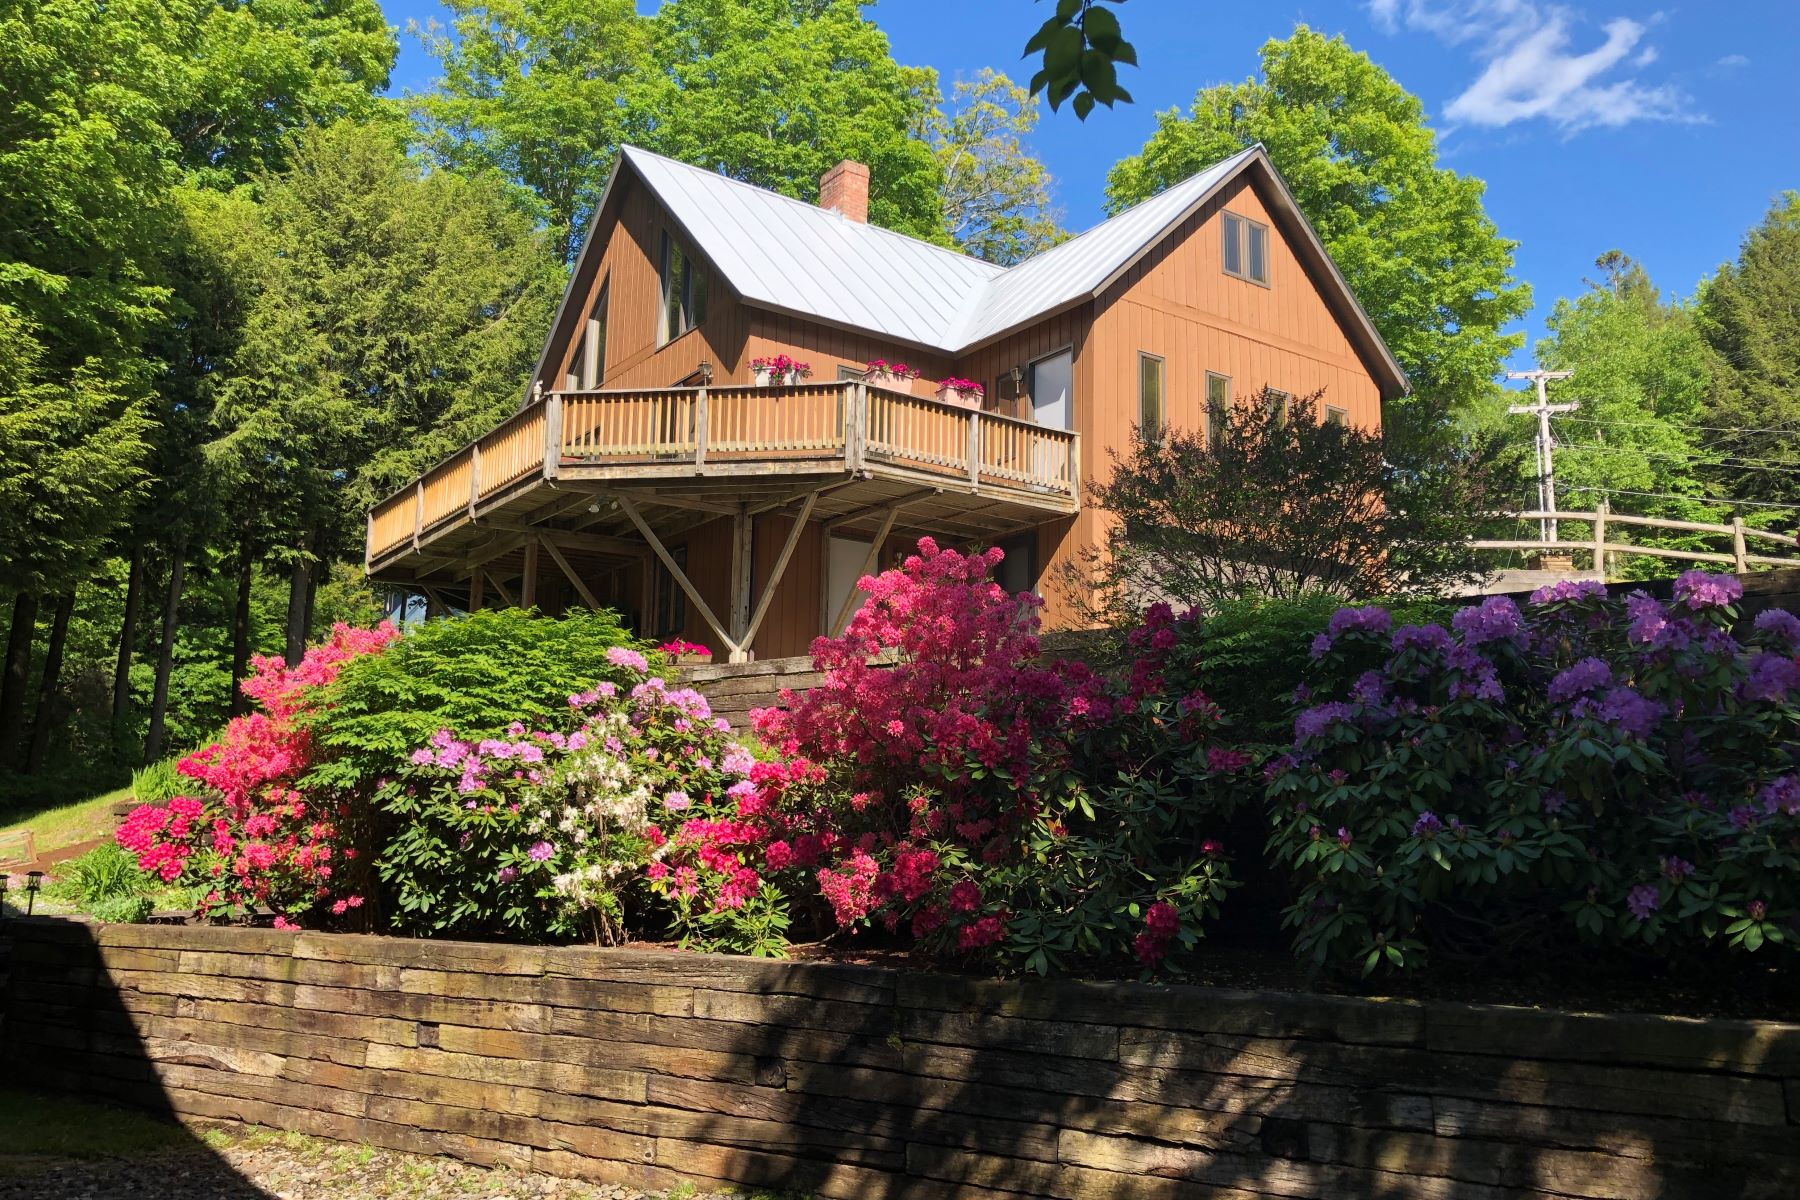 Single Family Homes for Sale at 543 High Meadows Road, Burke 543 High Meadows Rd Burke, Vermont 05832 United States